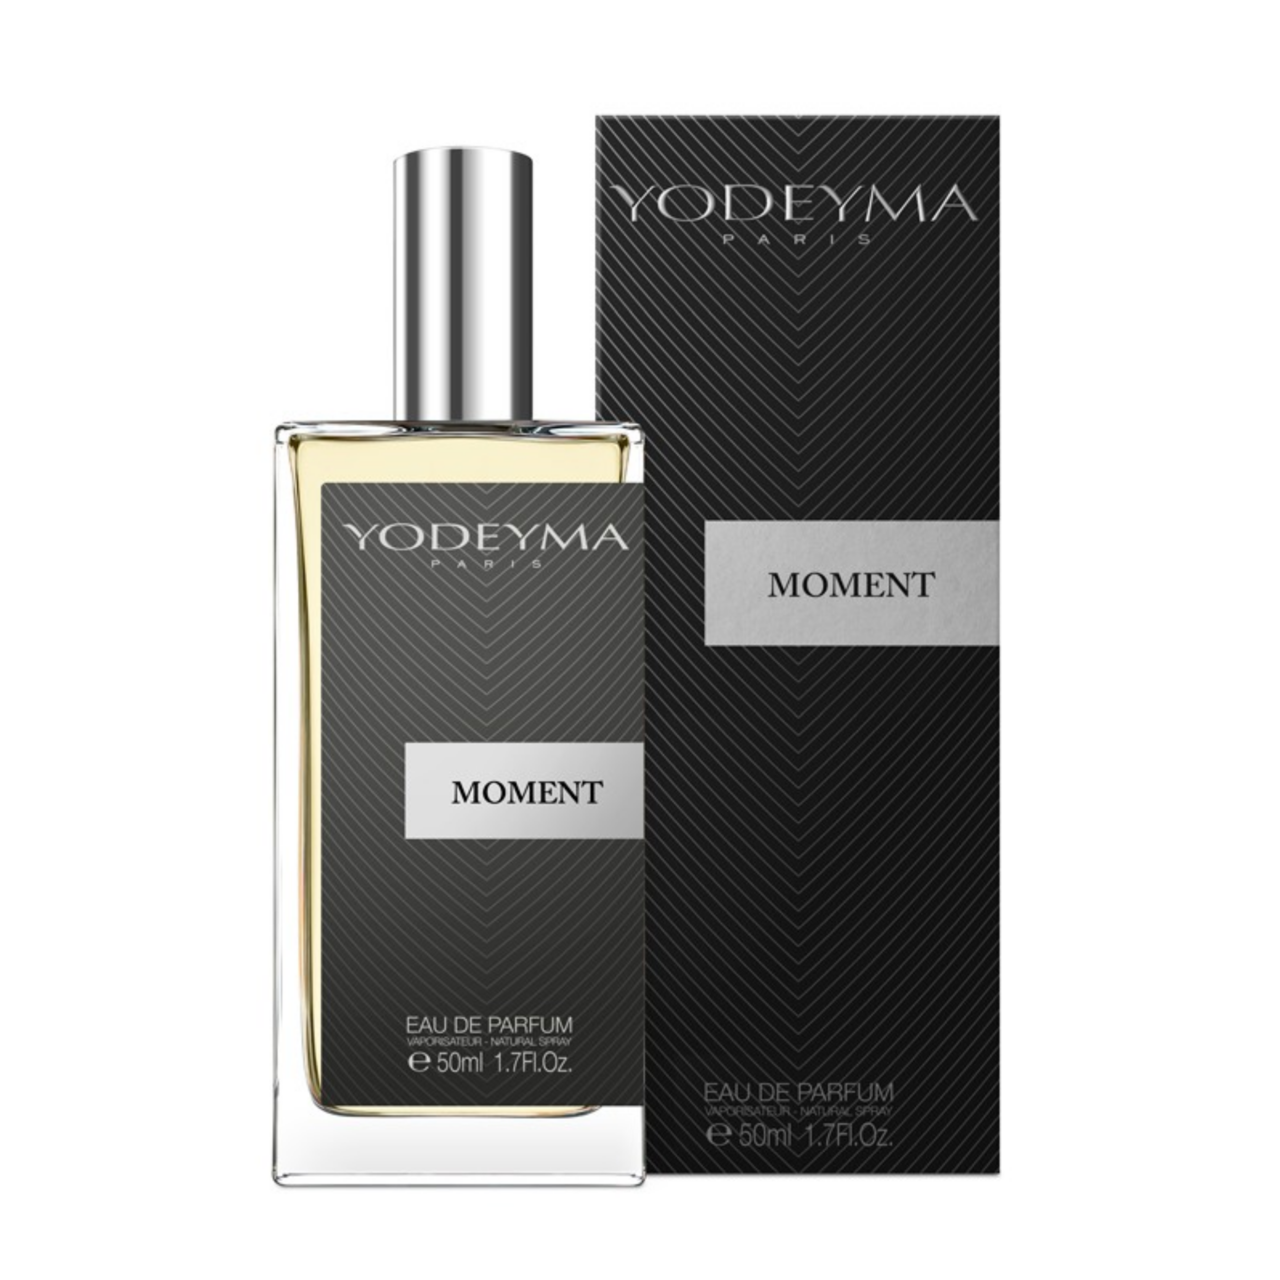 YODEYMA MOMENT EAU DE PARFUM 50ML - BOSS BOTTLED ALTERNATIVE